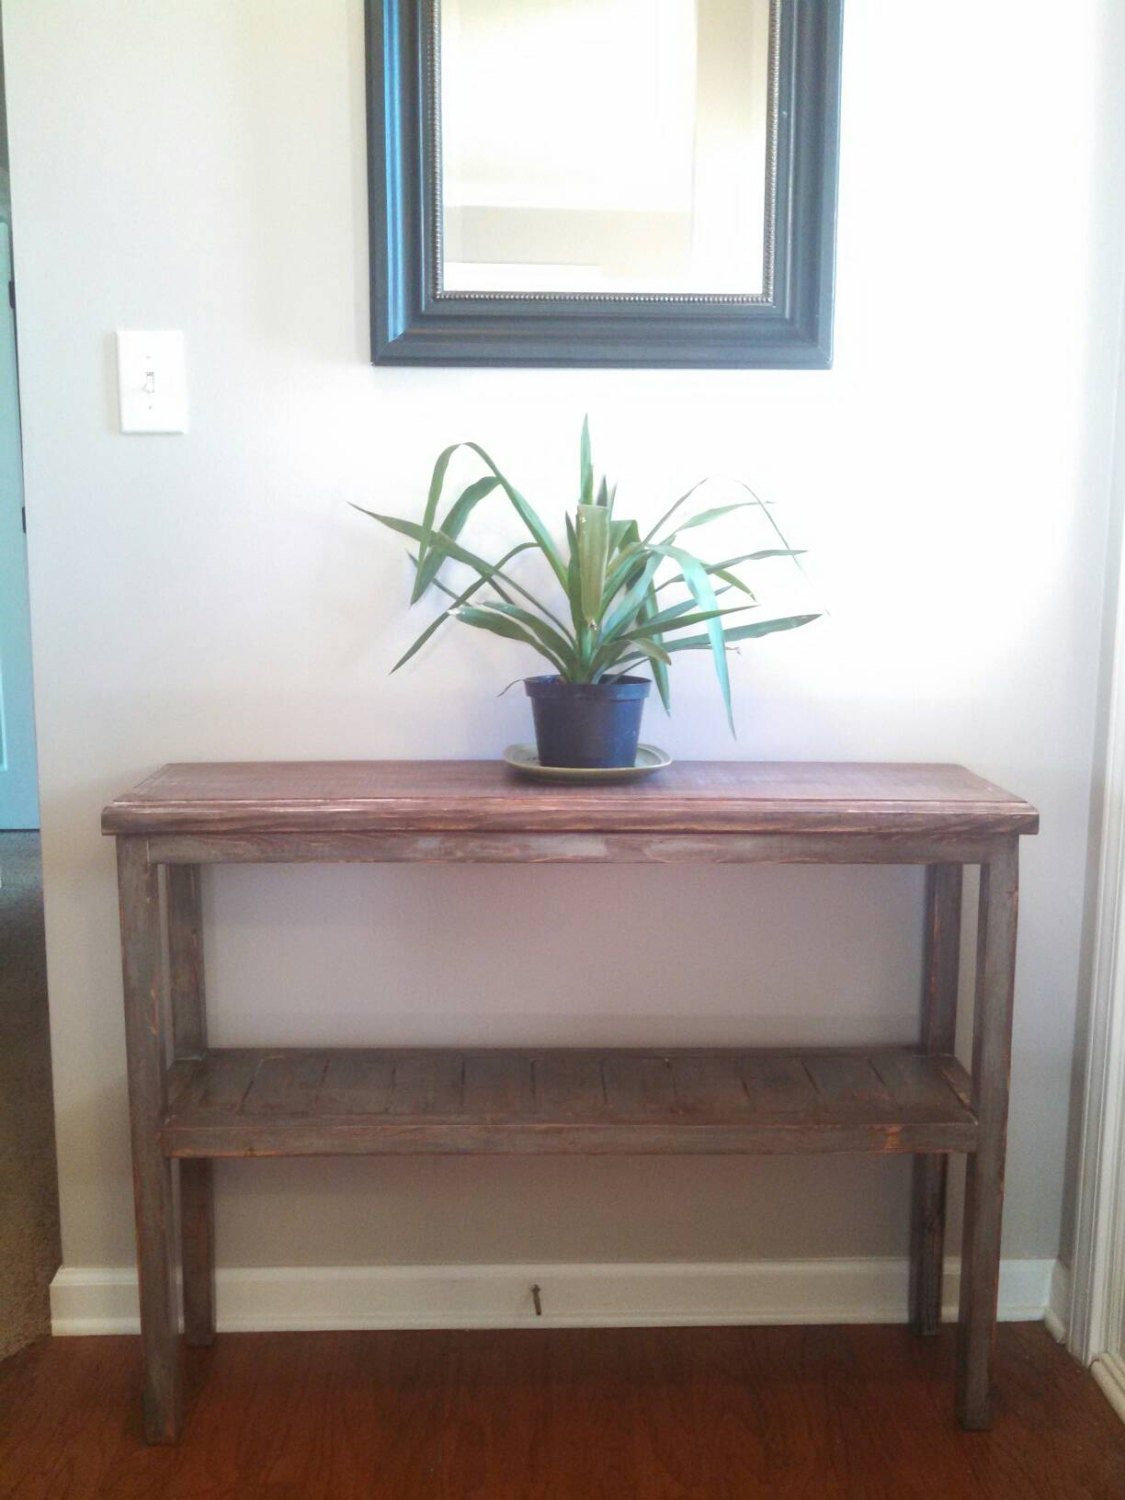 Foyer Table Etsy : Simple rustic blue entryway table by creativecaresec on etsy